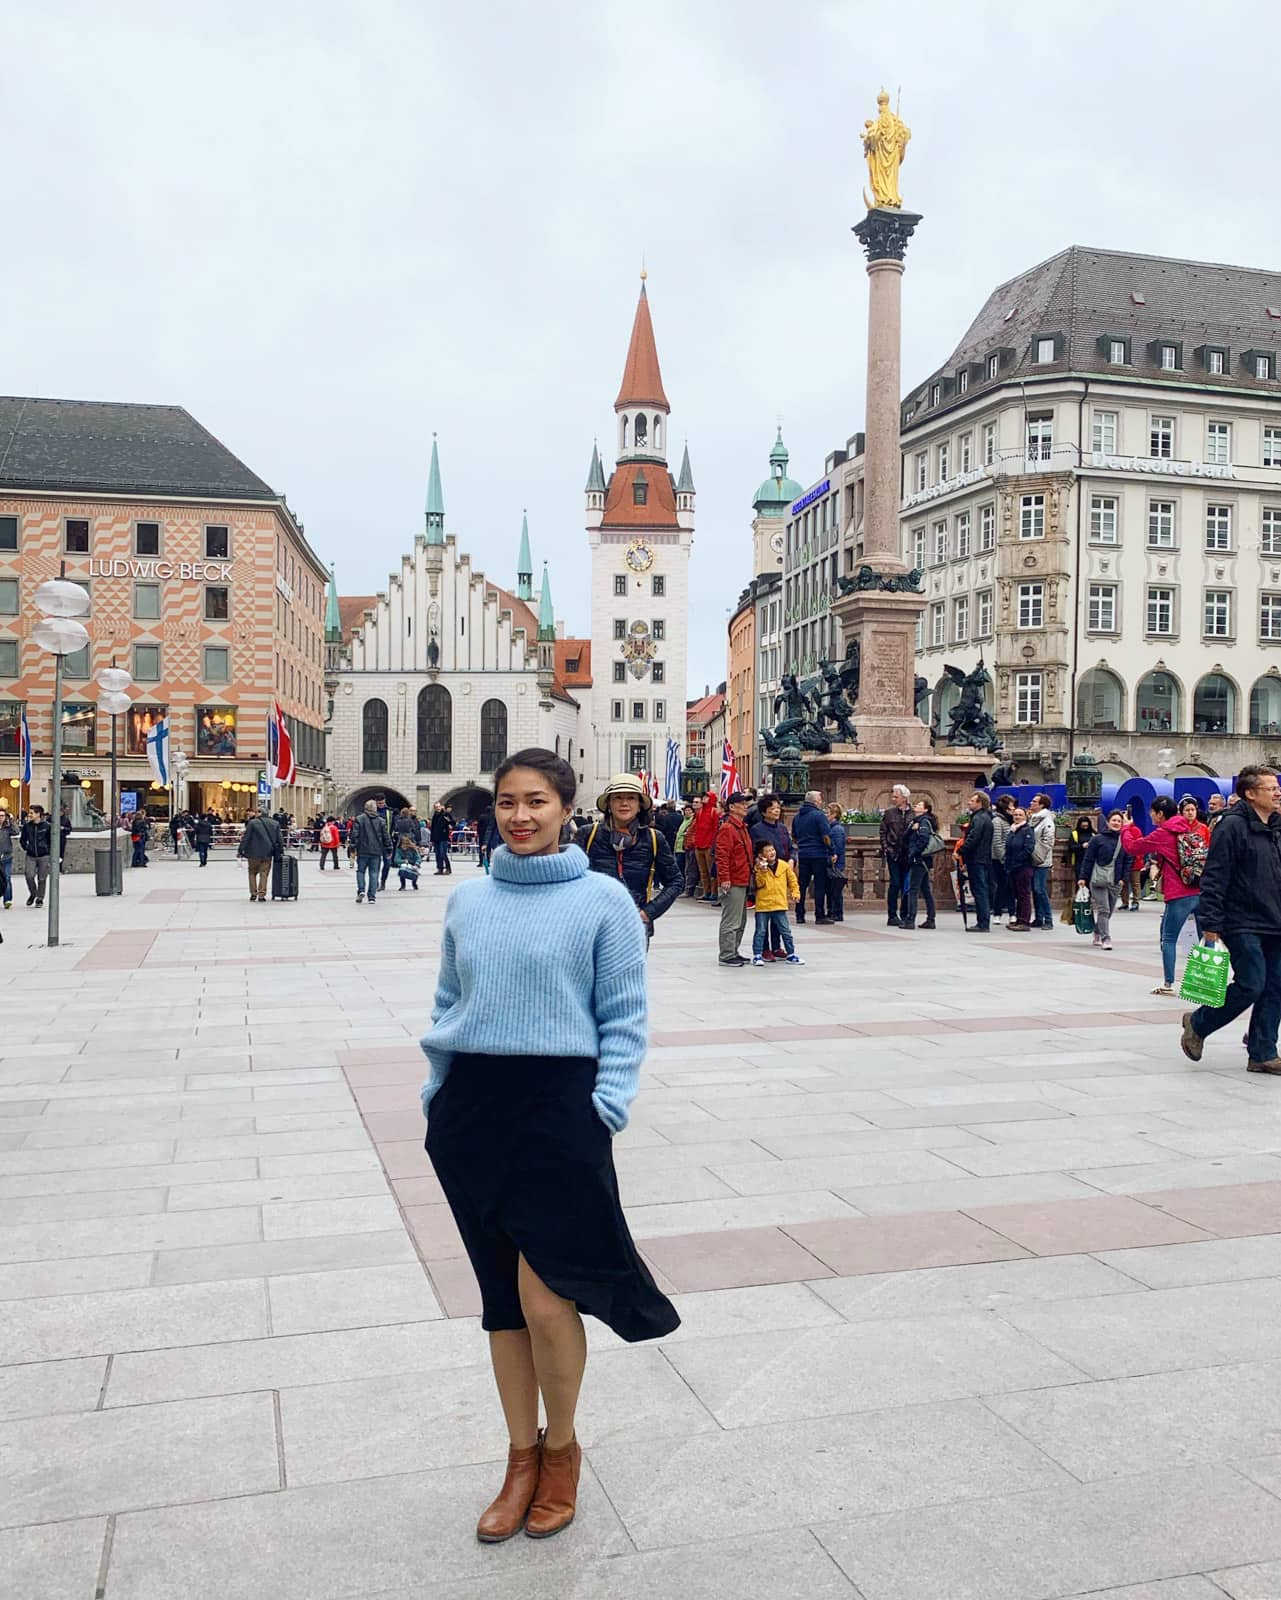 A woman in a blue sweater and black skirt in the foreground, she's standing in a town square in Munich where there are many people in the background as well as old but pretty buildings